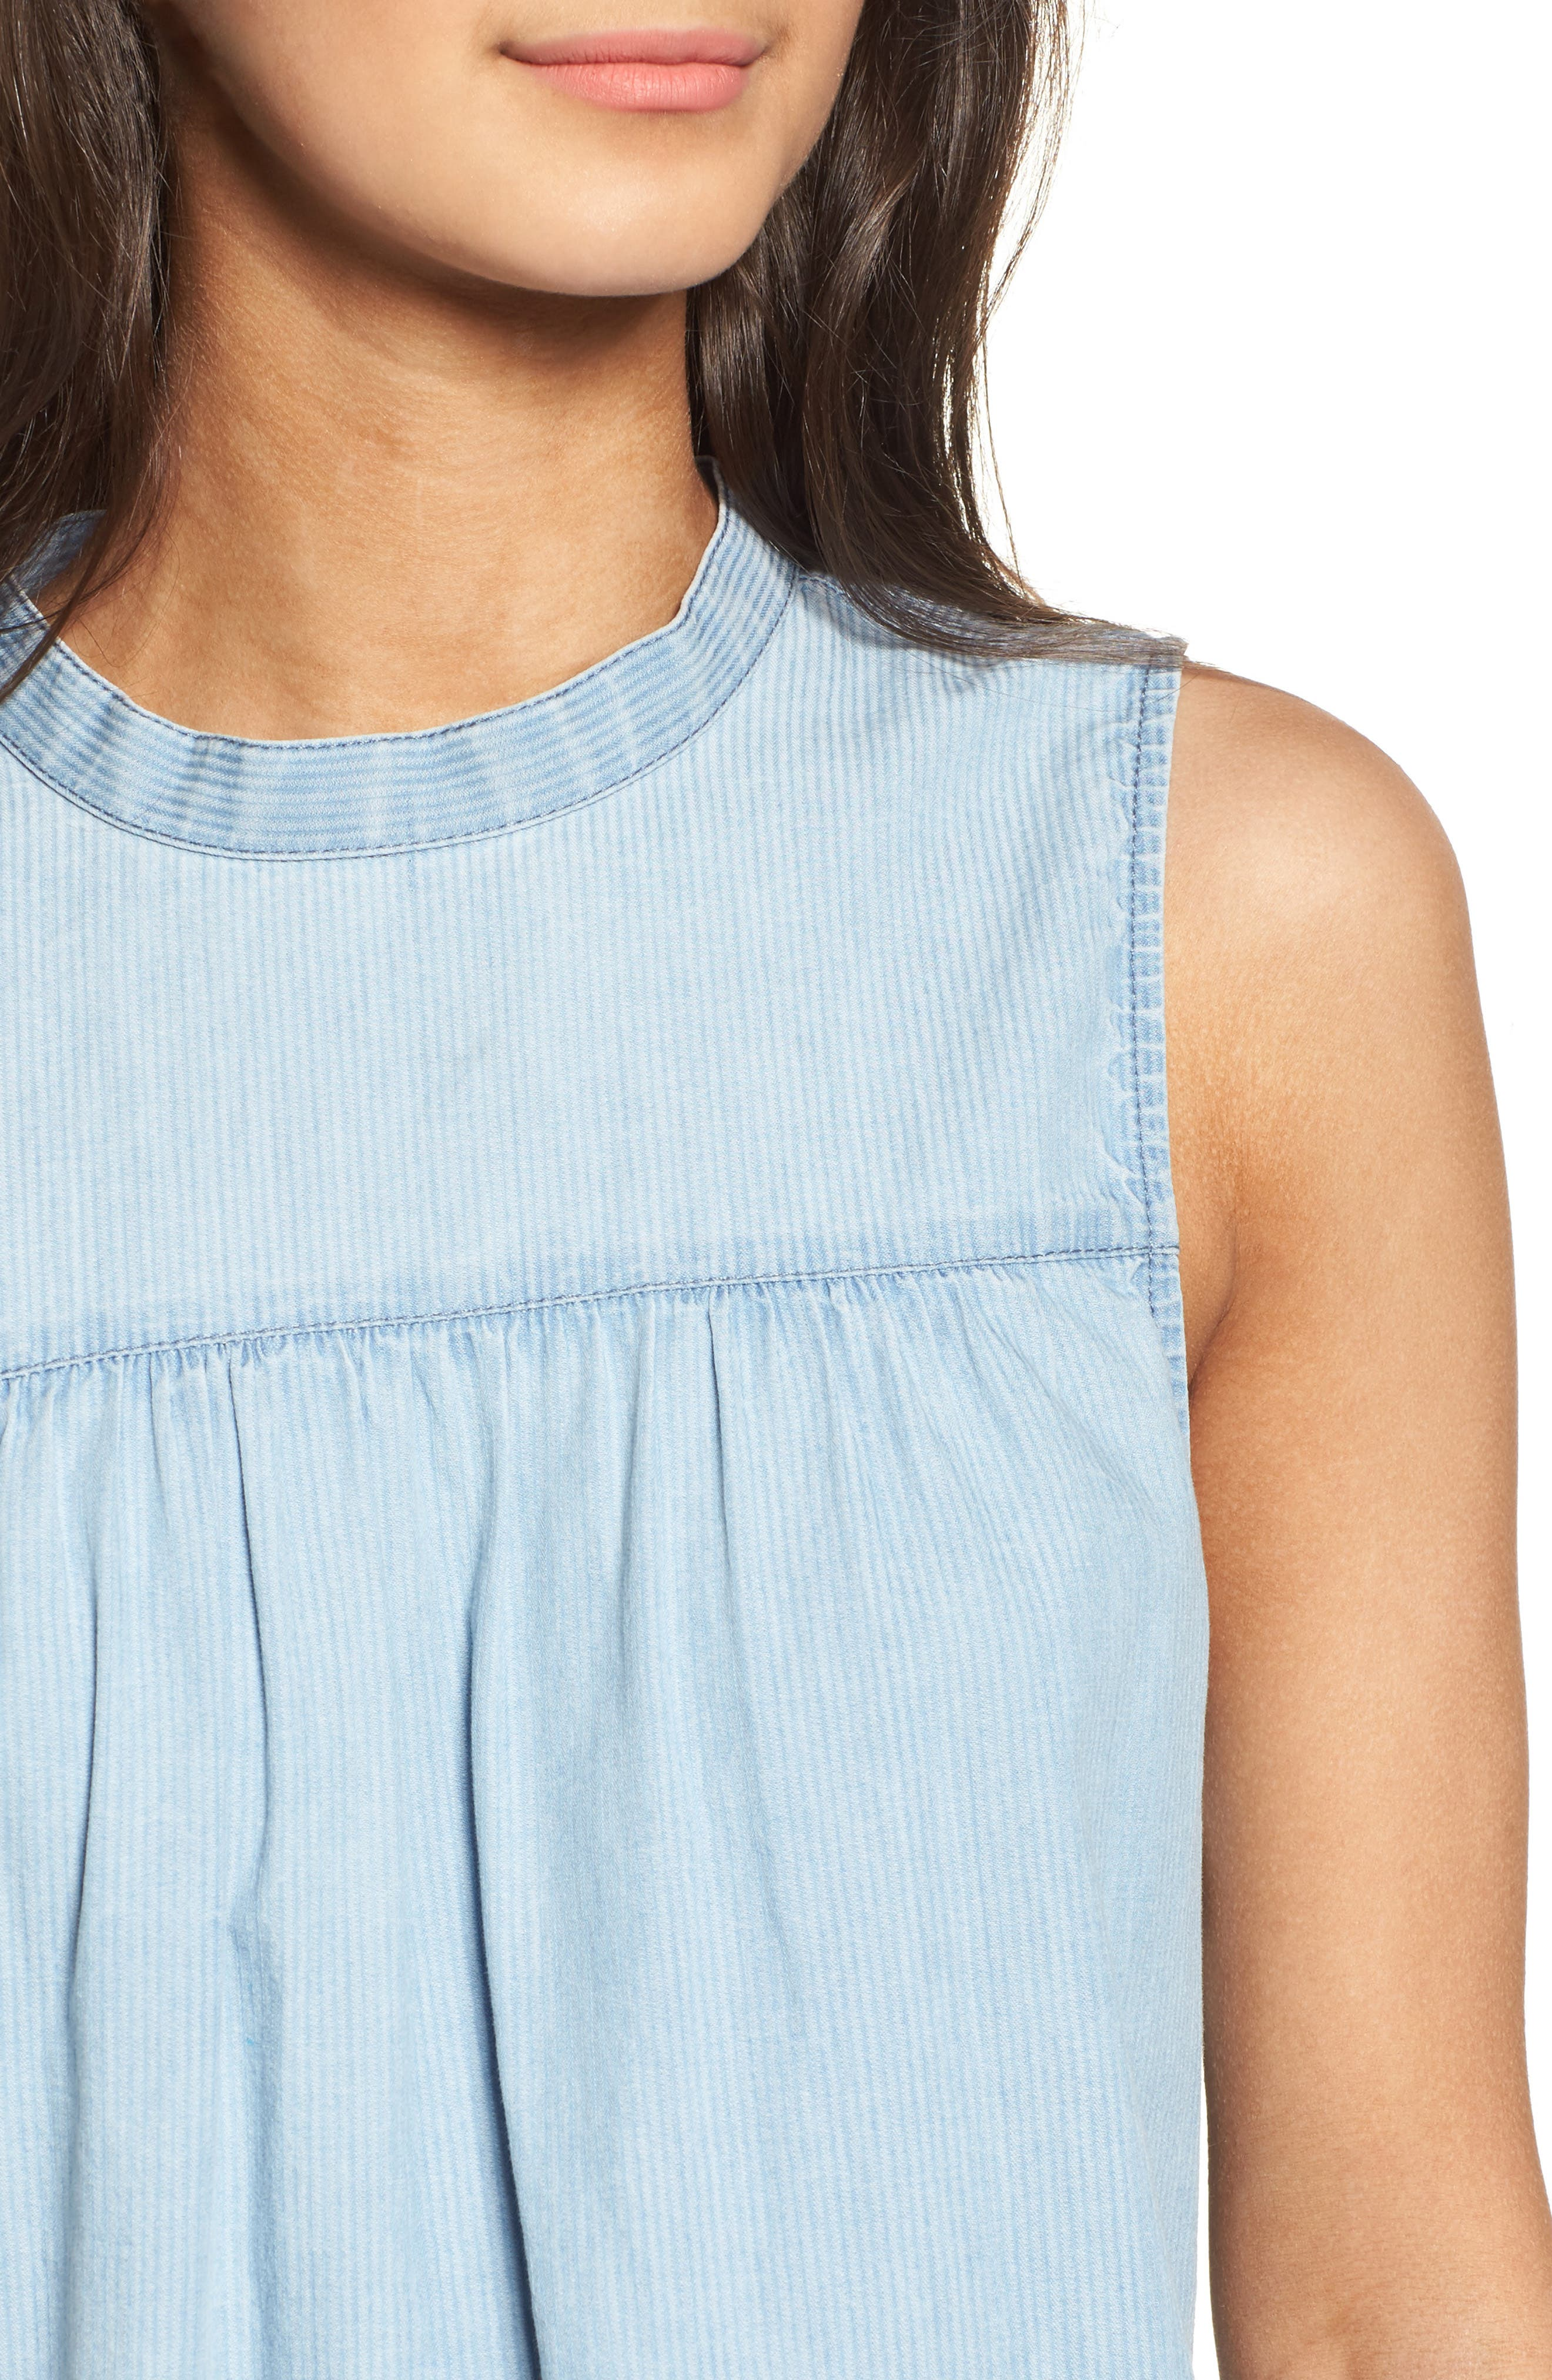 Ruffle Chambray Top,                             Alternate thumbnail 4, color,                             Blue Cashmere